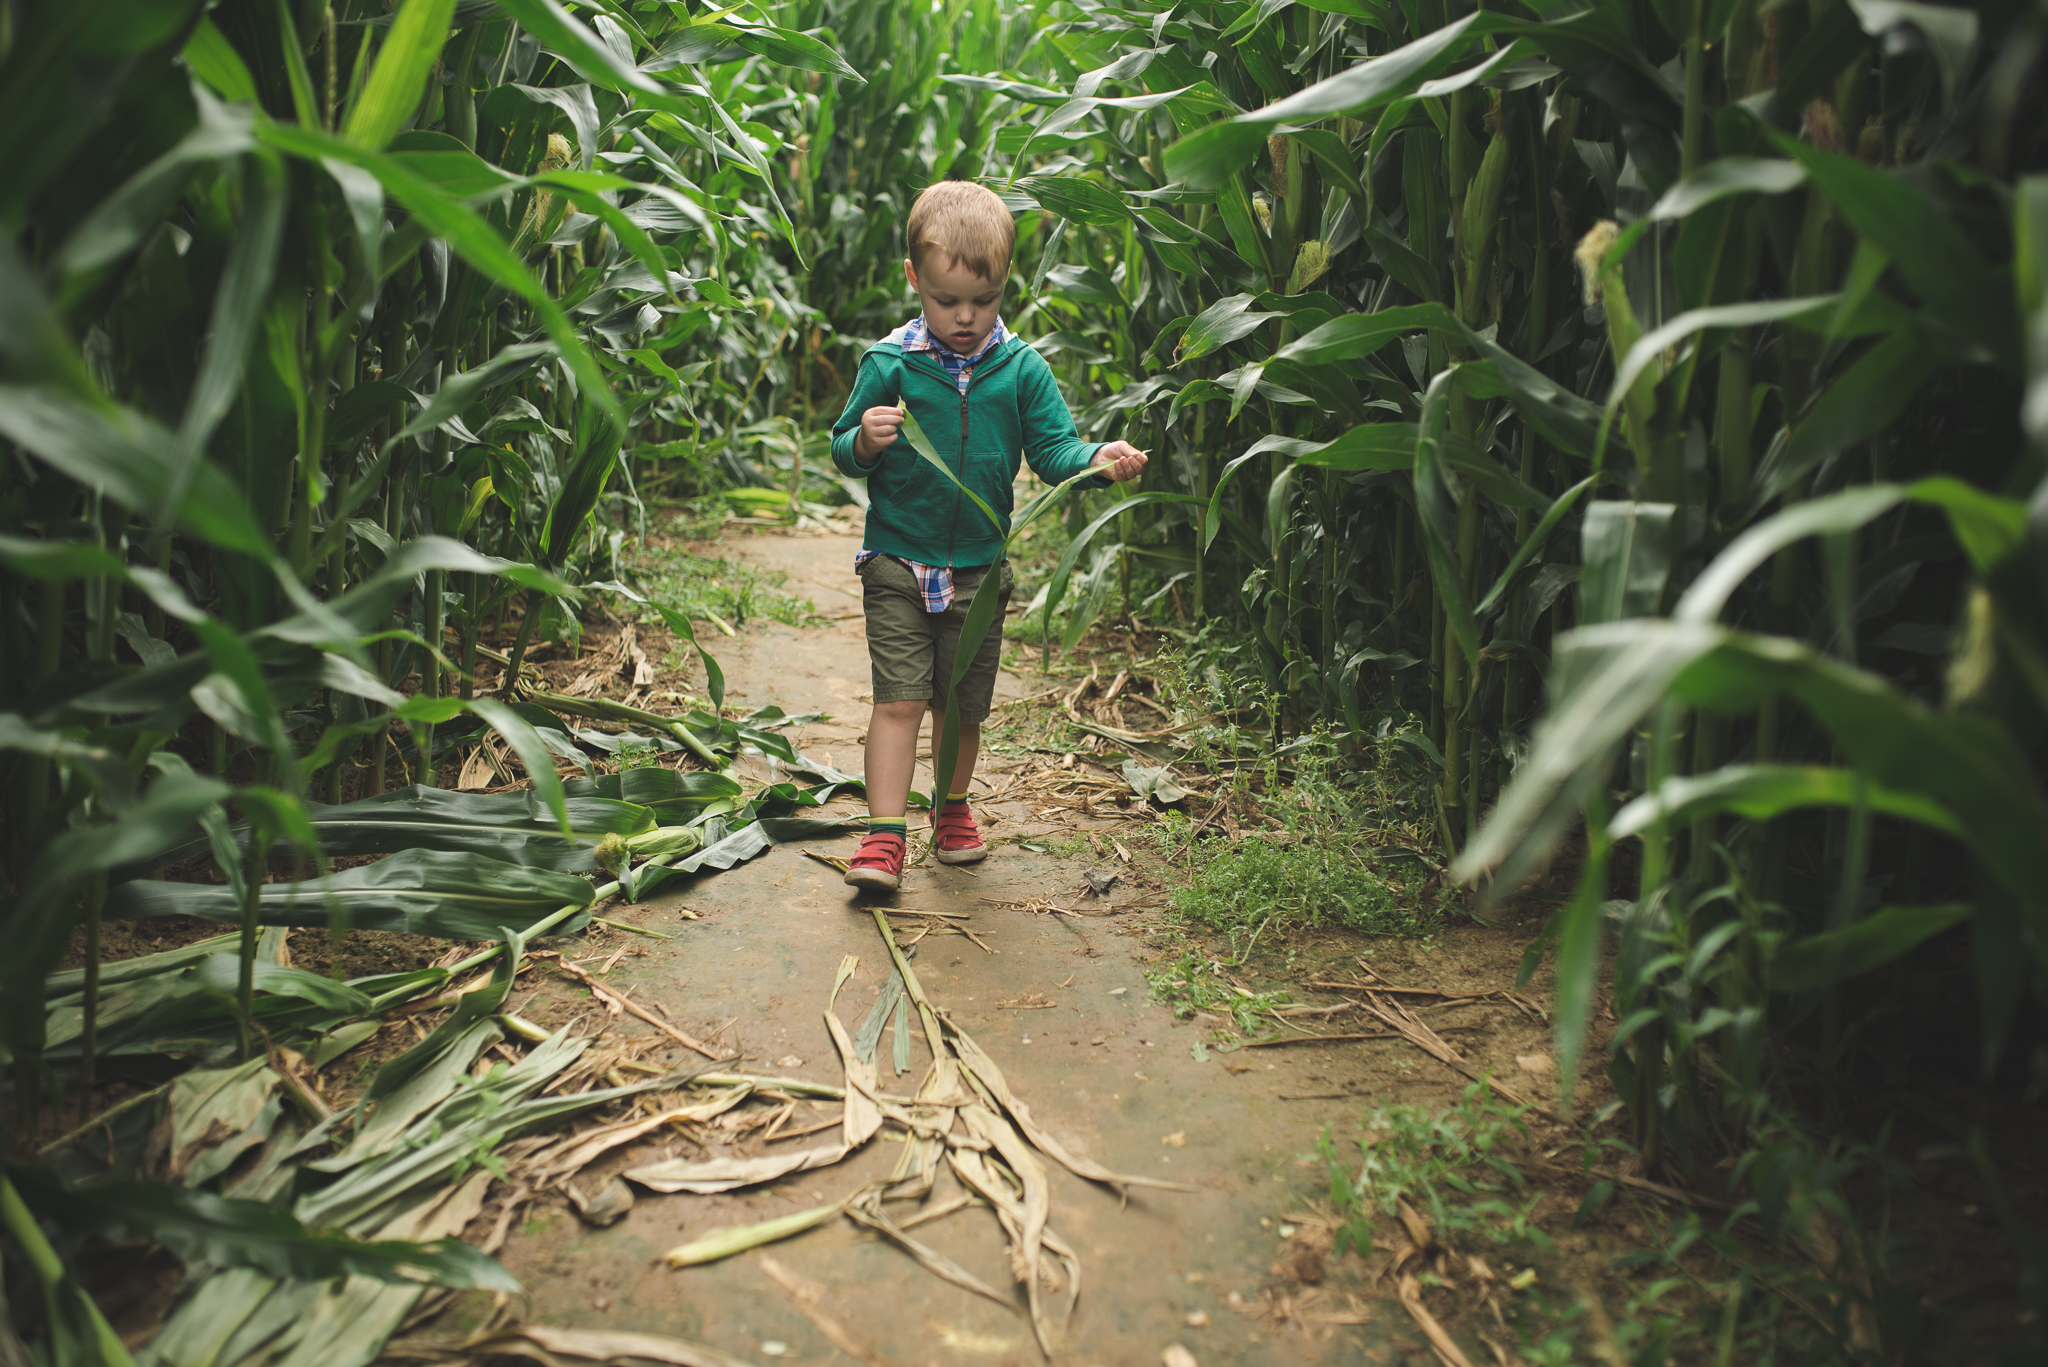 Walking through this maize maze, I snapped this as he walked followed behind me